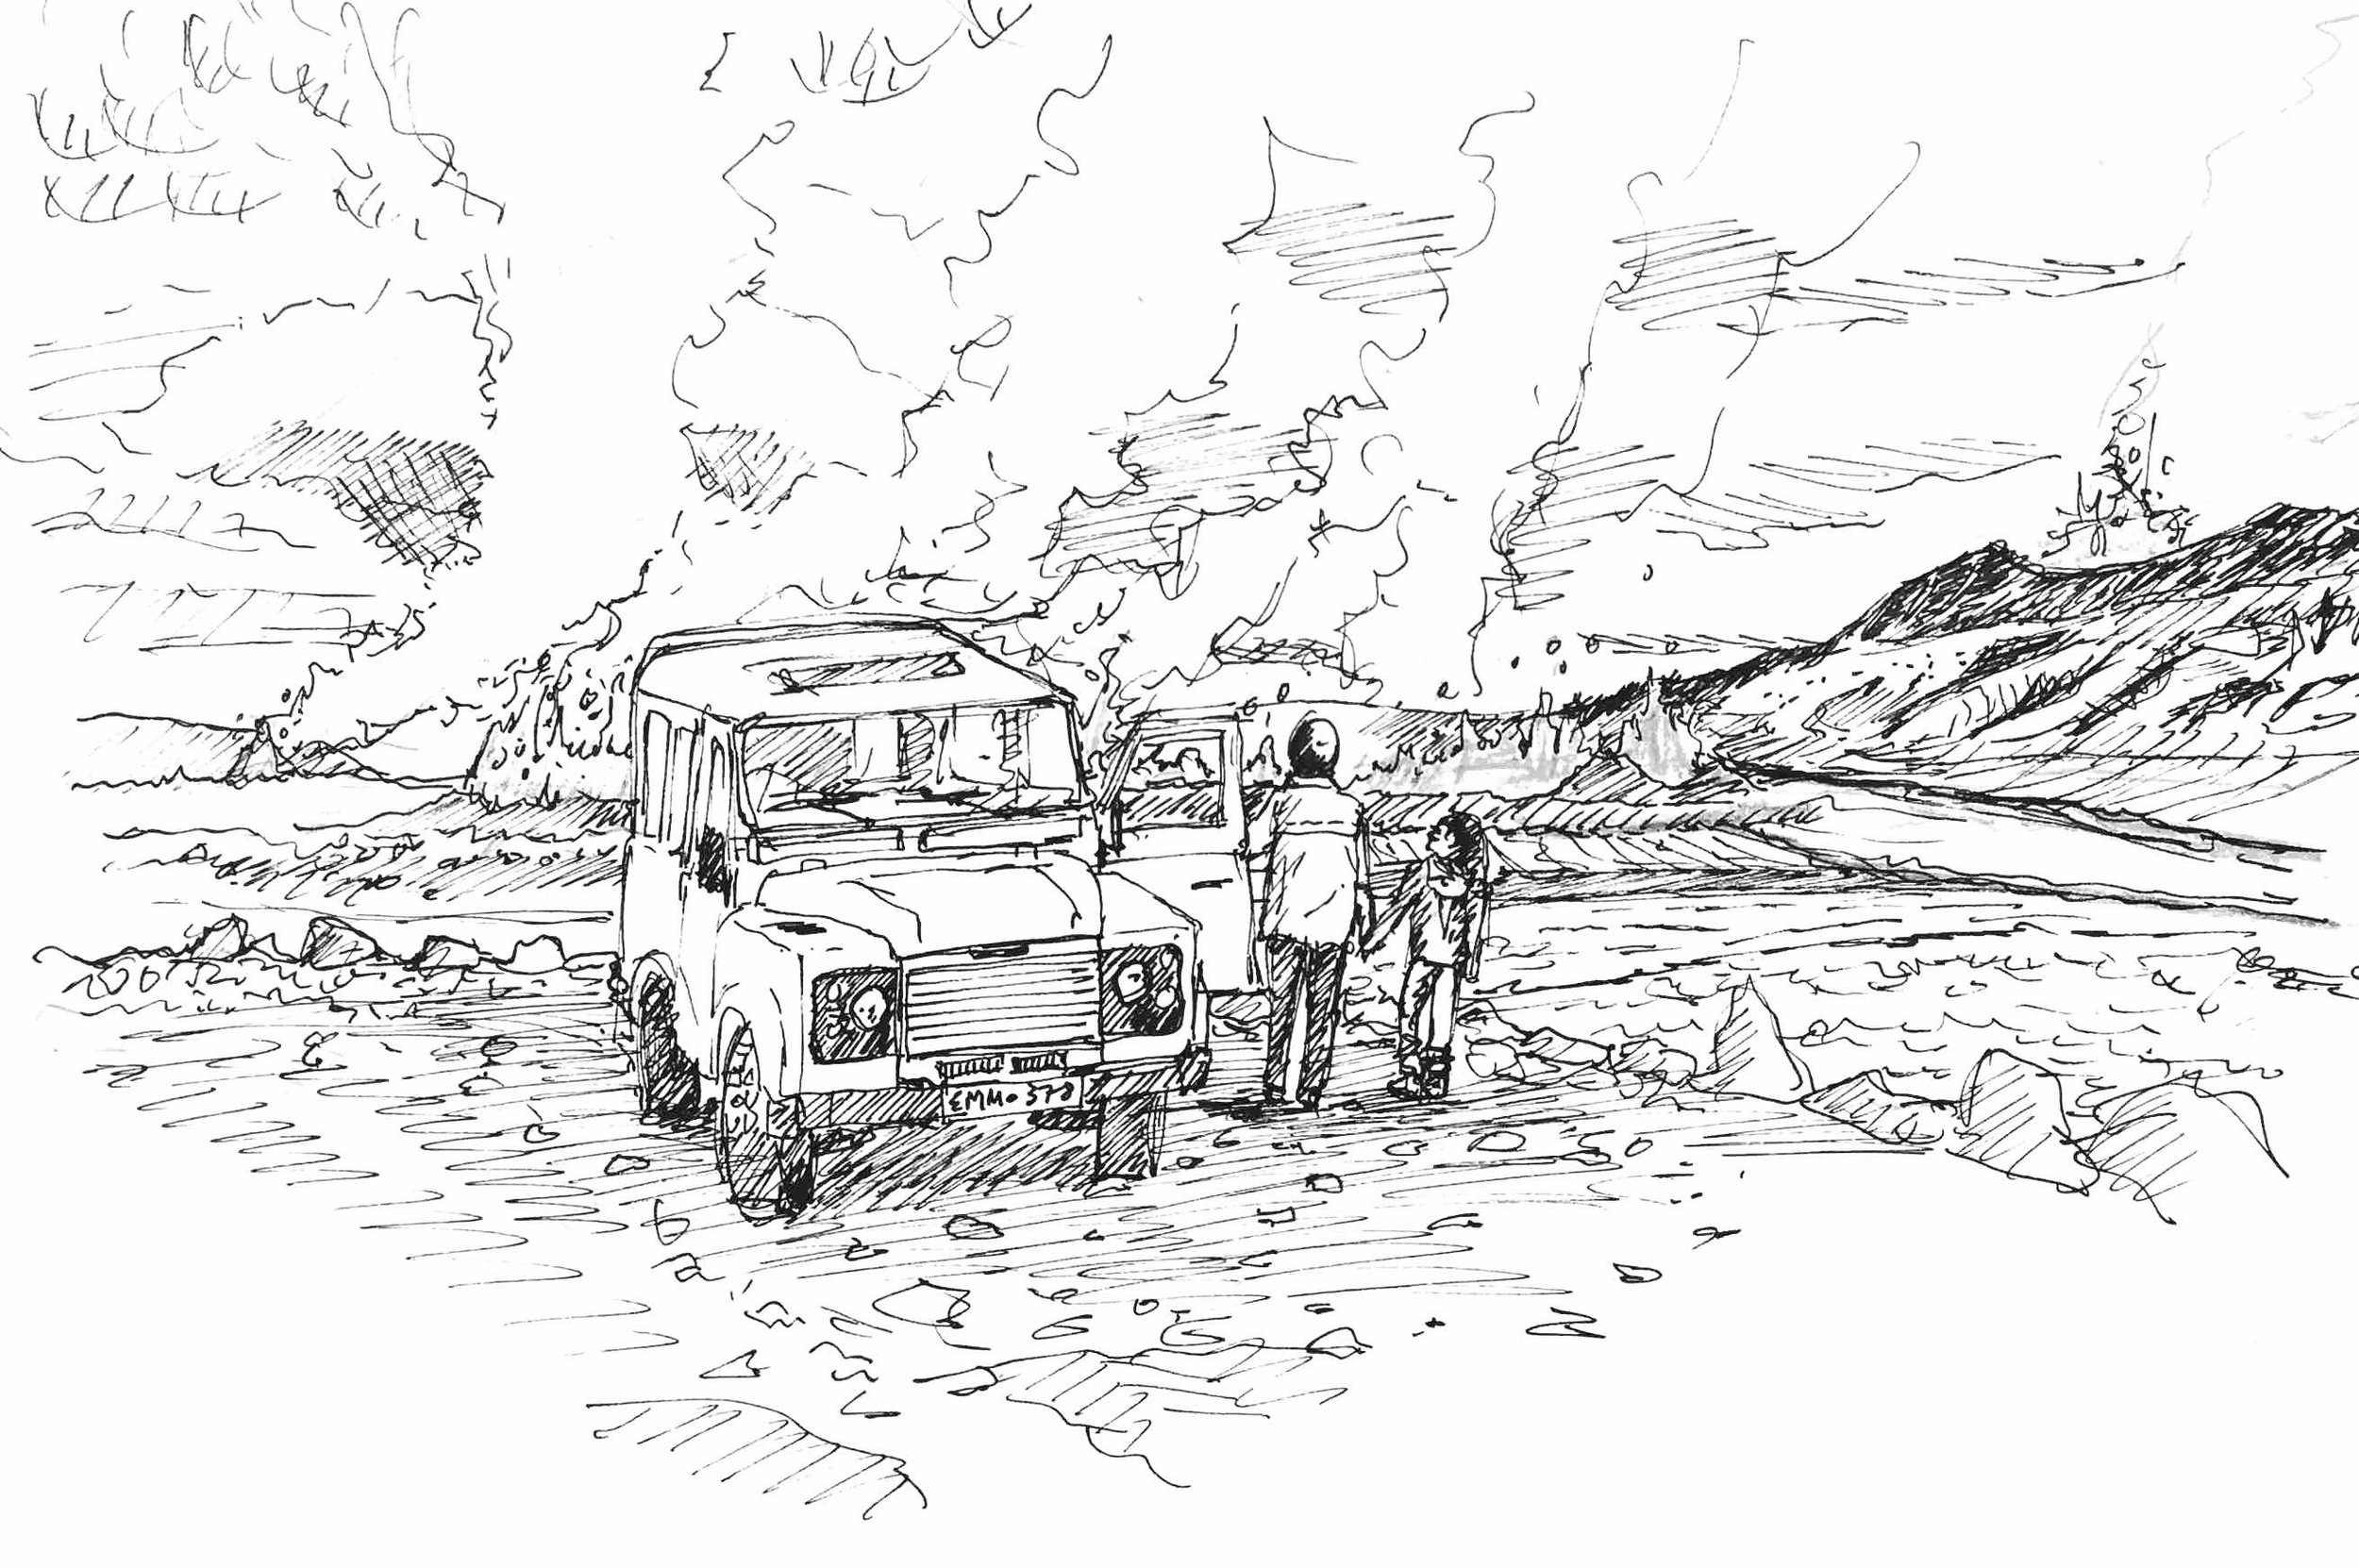 34 Landrover by Eruption.jpg